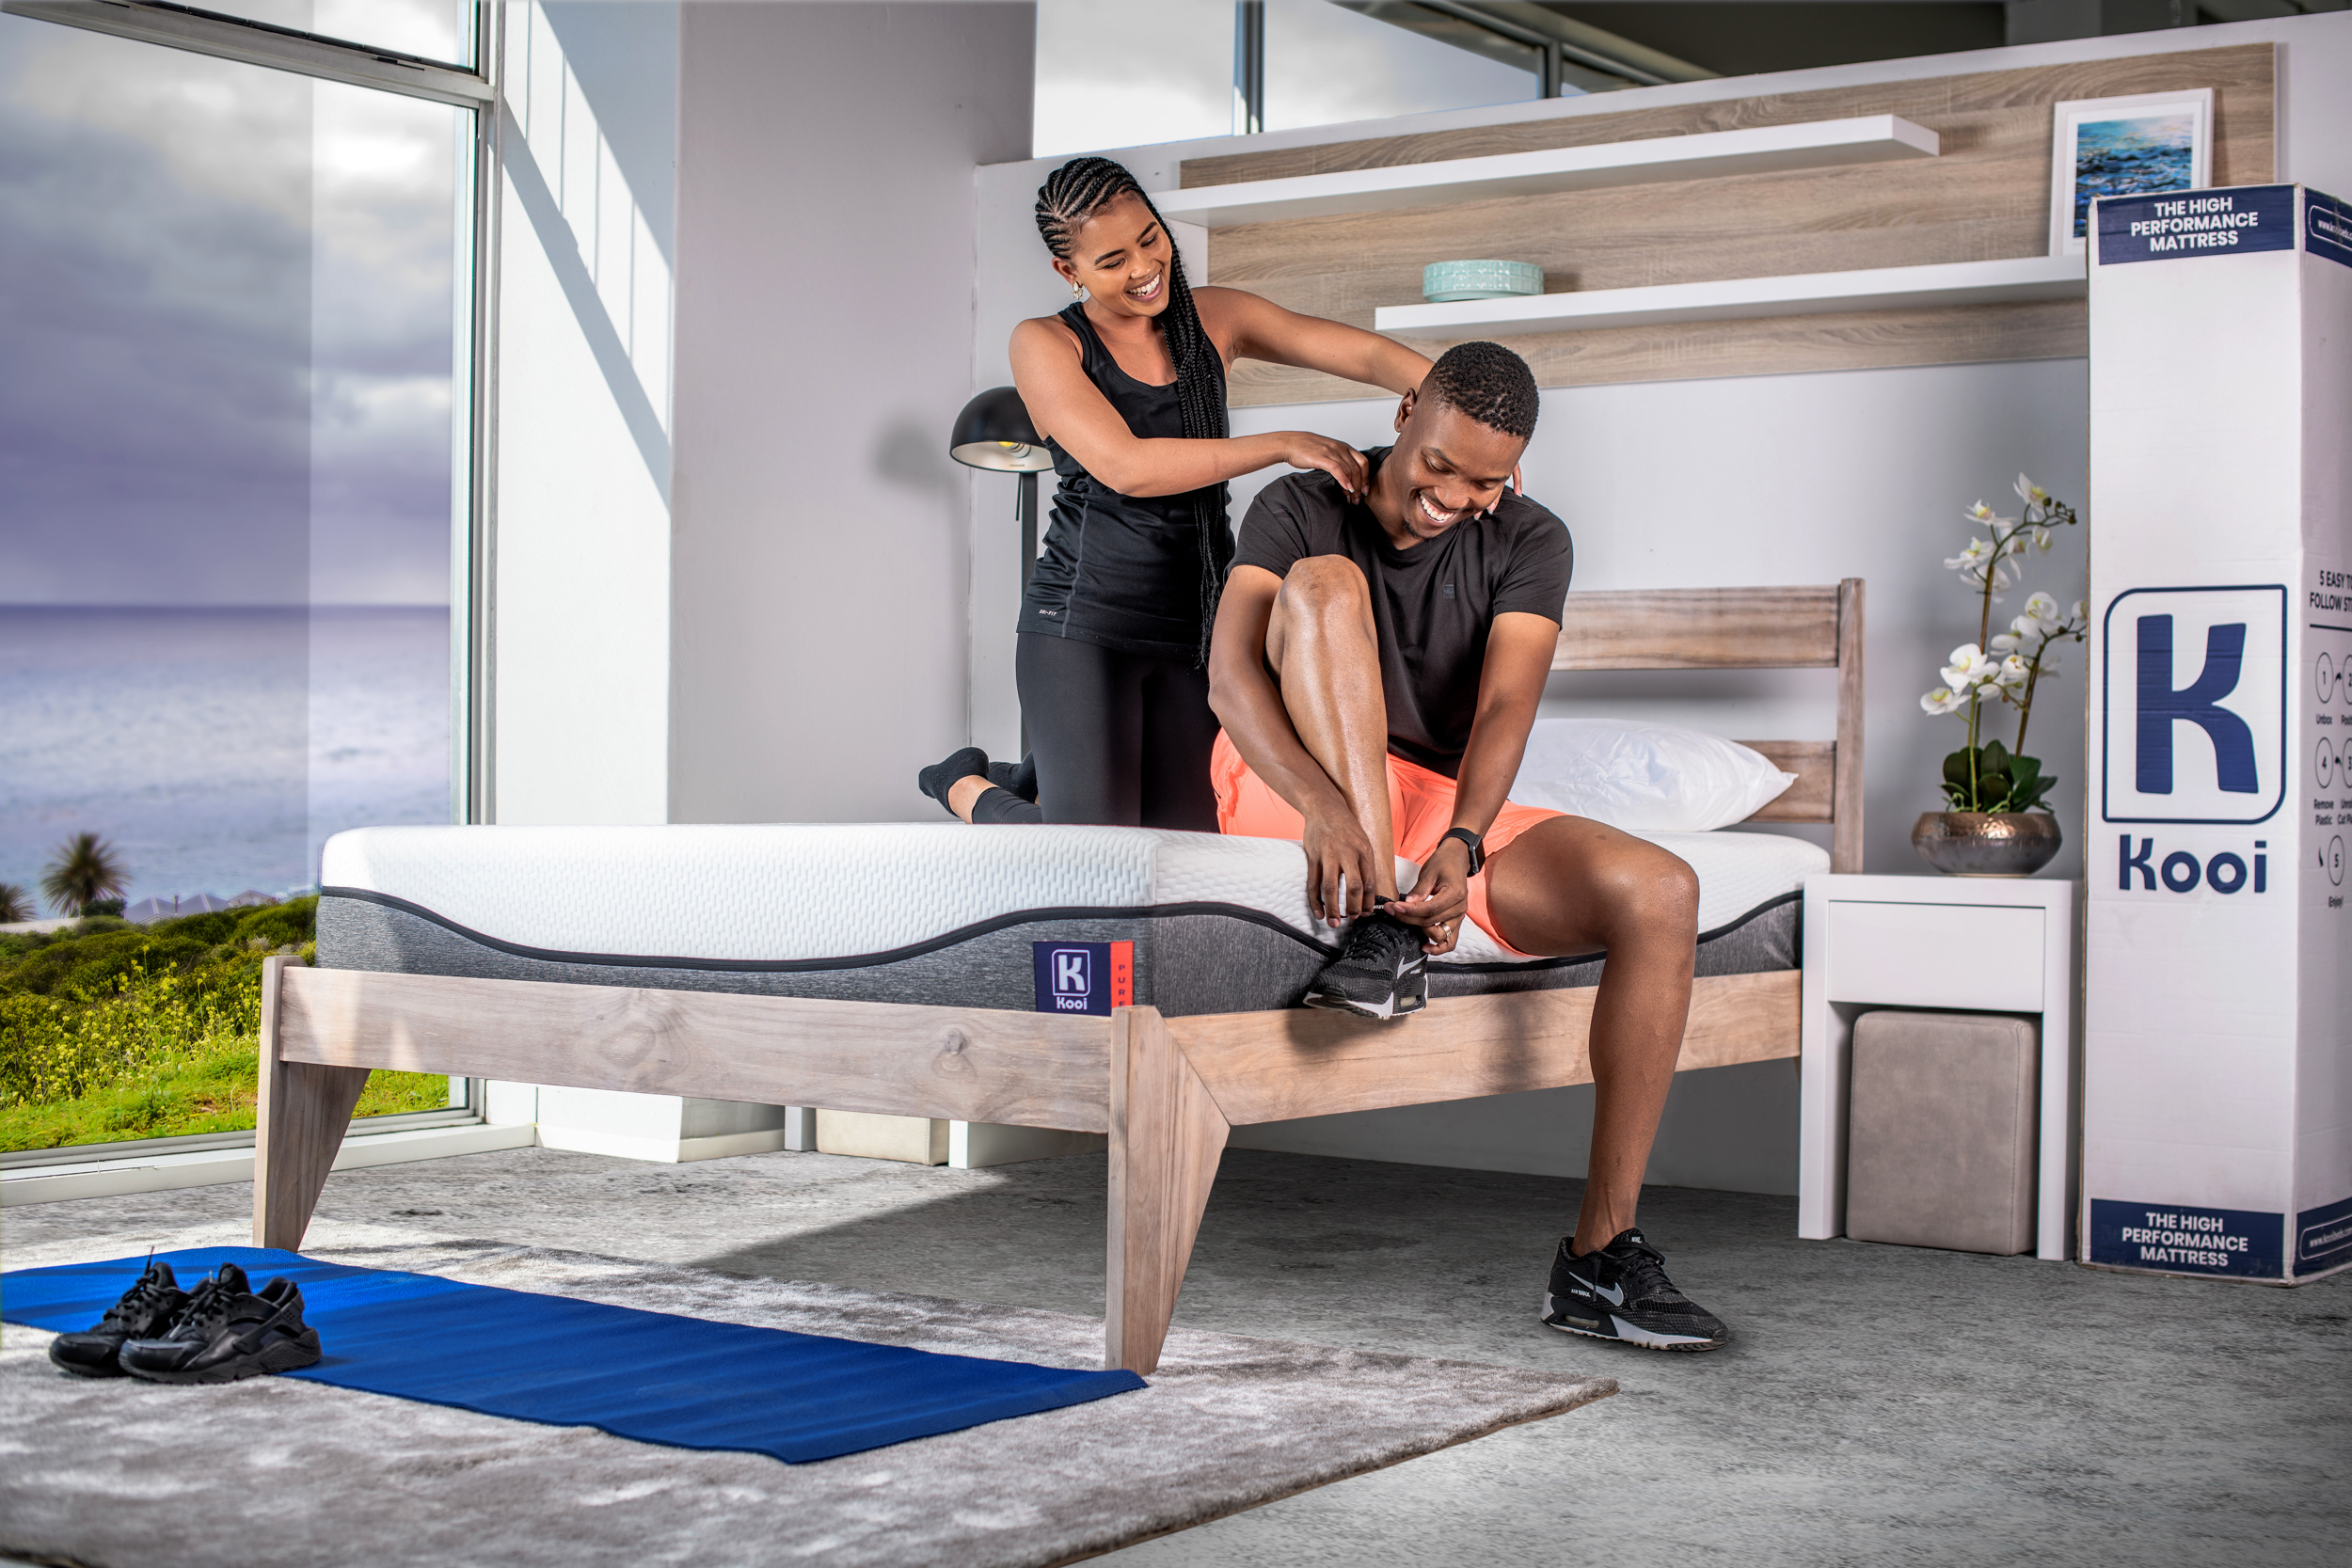 The Mattress Warehouse is one of South Africa's leading bed manufacturers and suppliers of beds directly to the public. Their main goal is simple – they want to help every South African find the perfect bed for their budget and sleeping style. We were tasked to provide the Matress Warehouse with marketing images and promotional […]